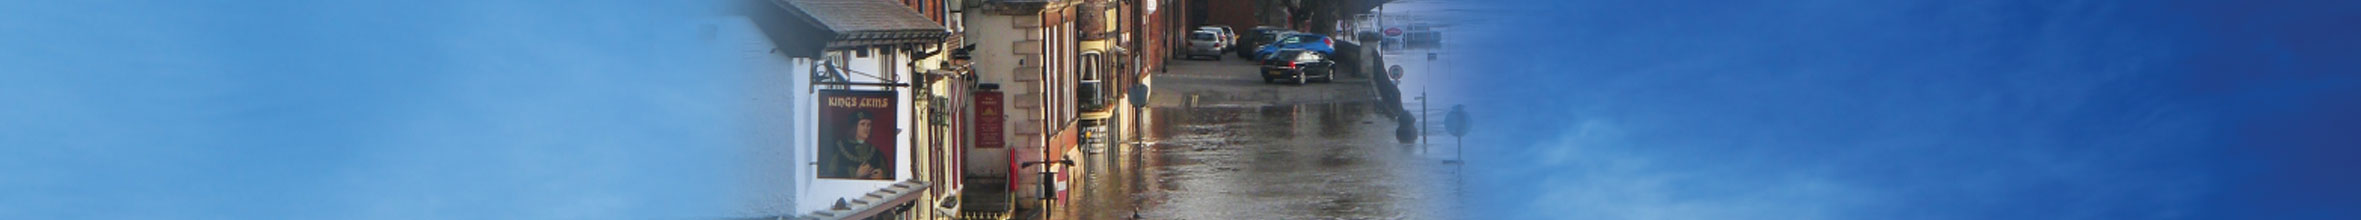 Affordable insurance for flood risk homes – how Flood Re will help